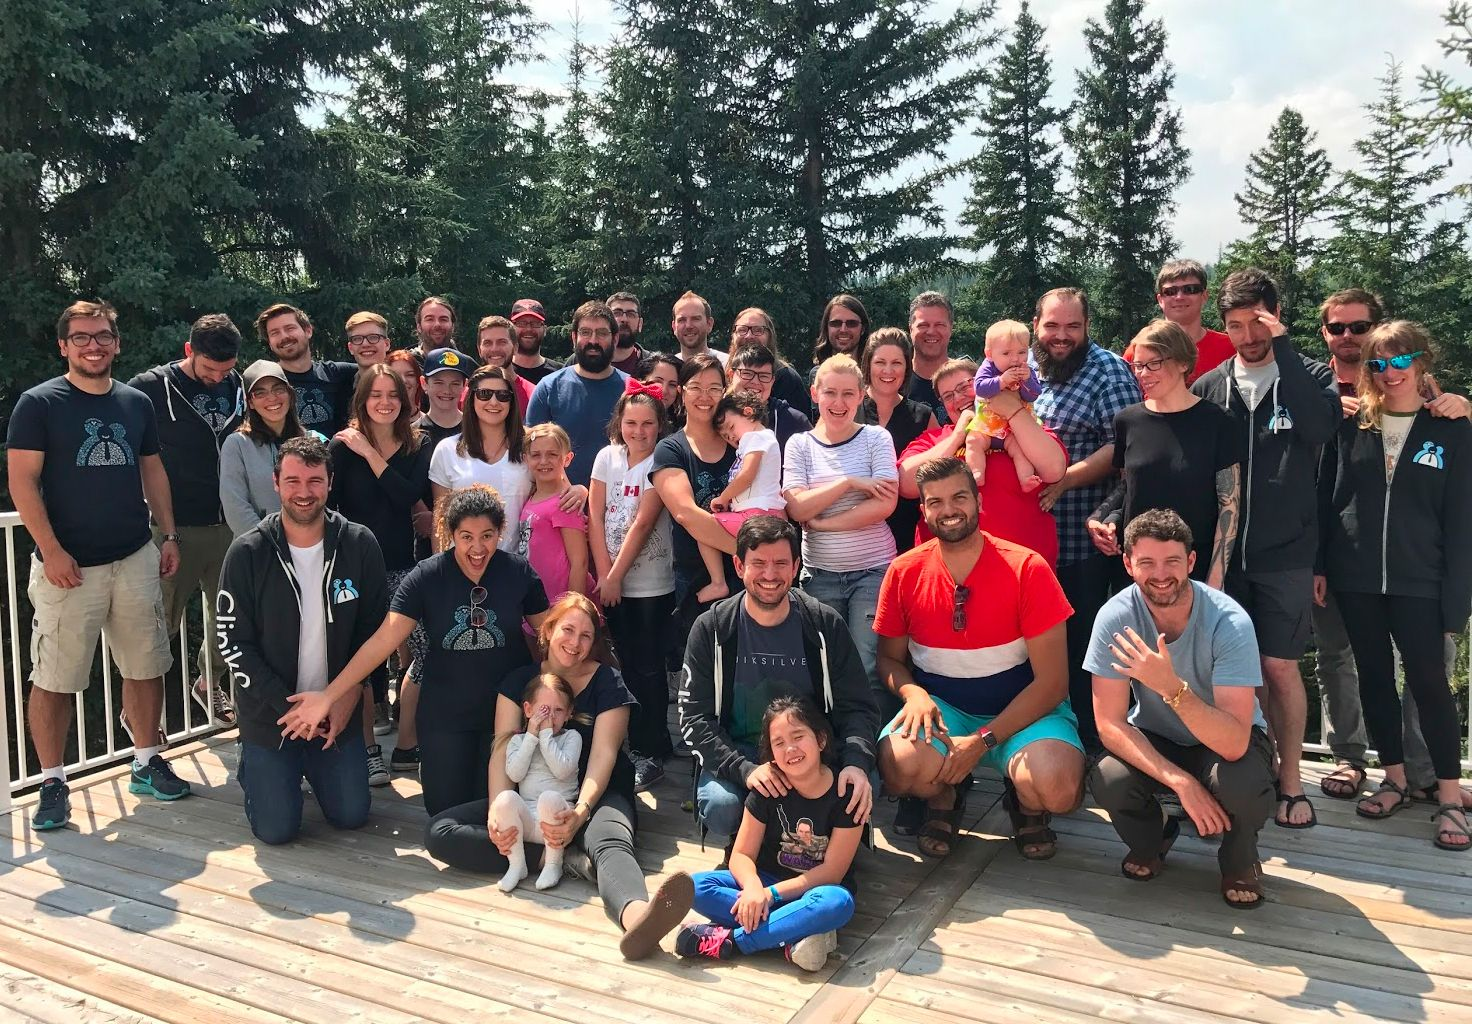 A group photo of the Cliniko team and family members in Canada.